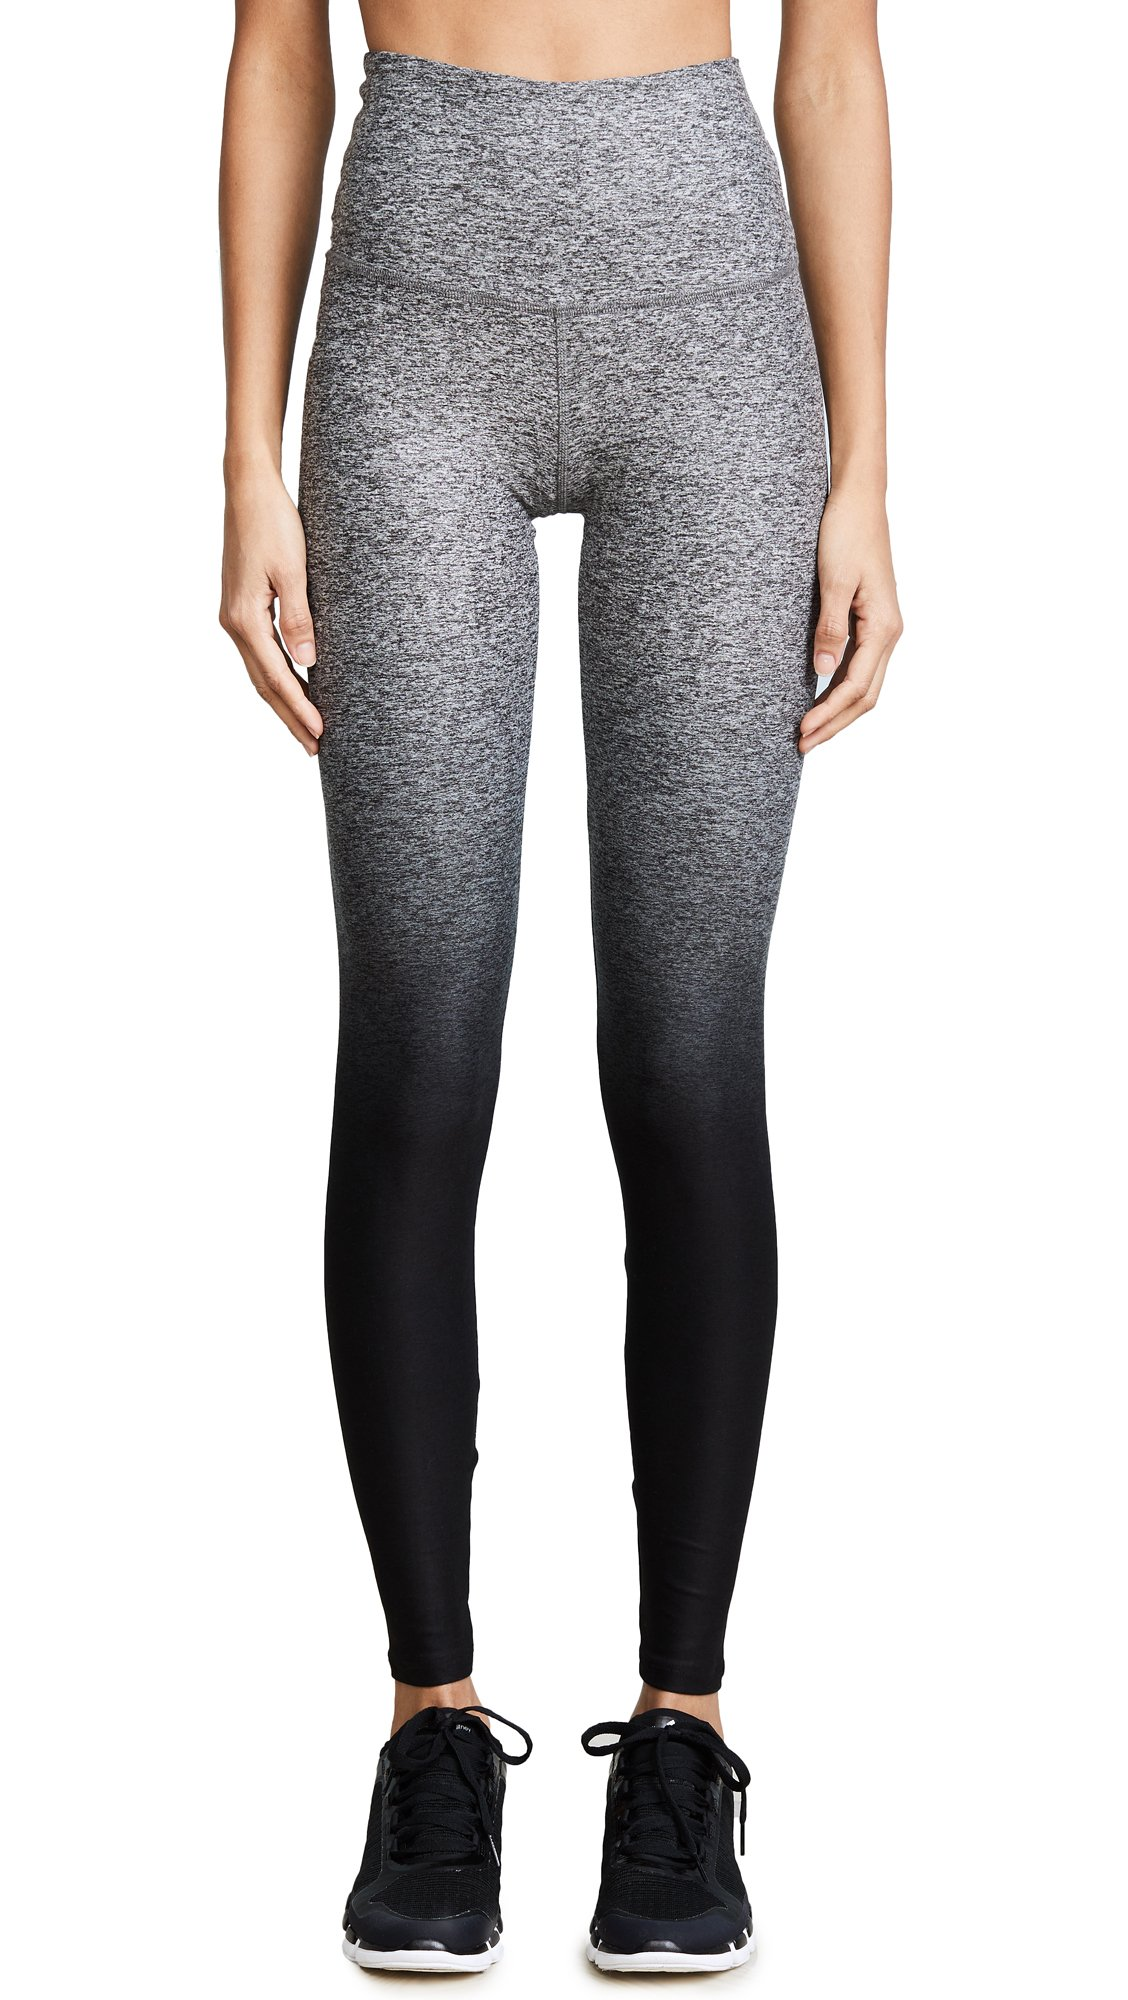 Beyond Yoga Women's Ombre Leggings, Black Ombre, X-Small